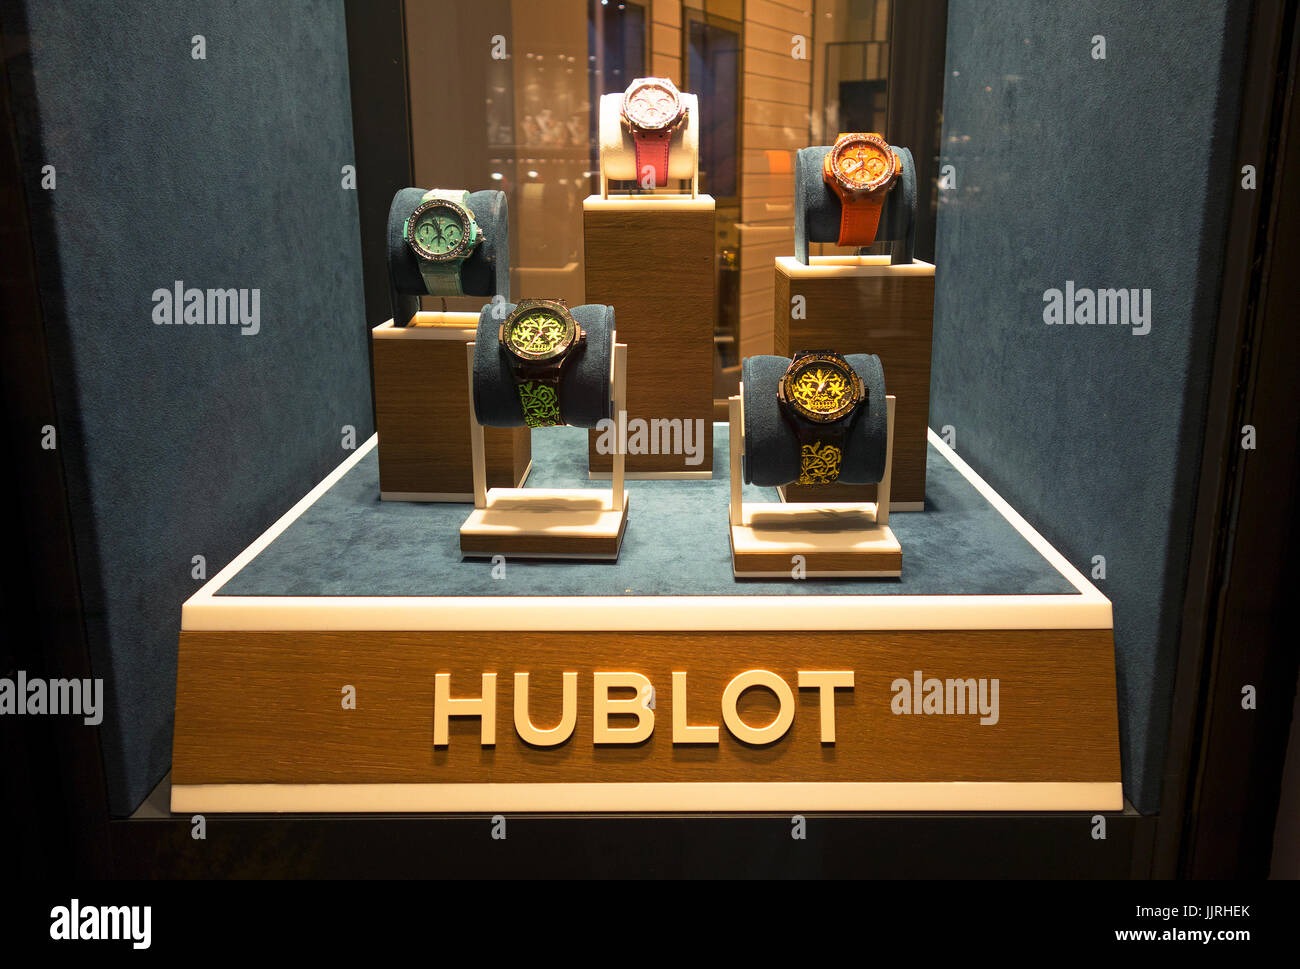 Hublot watch display - Stock Image